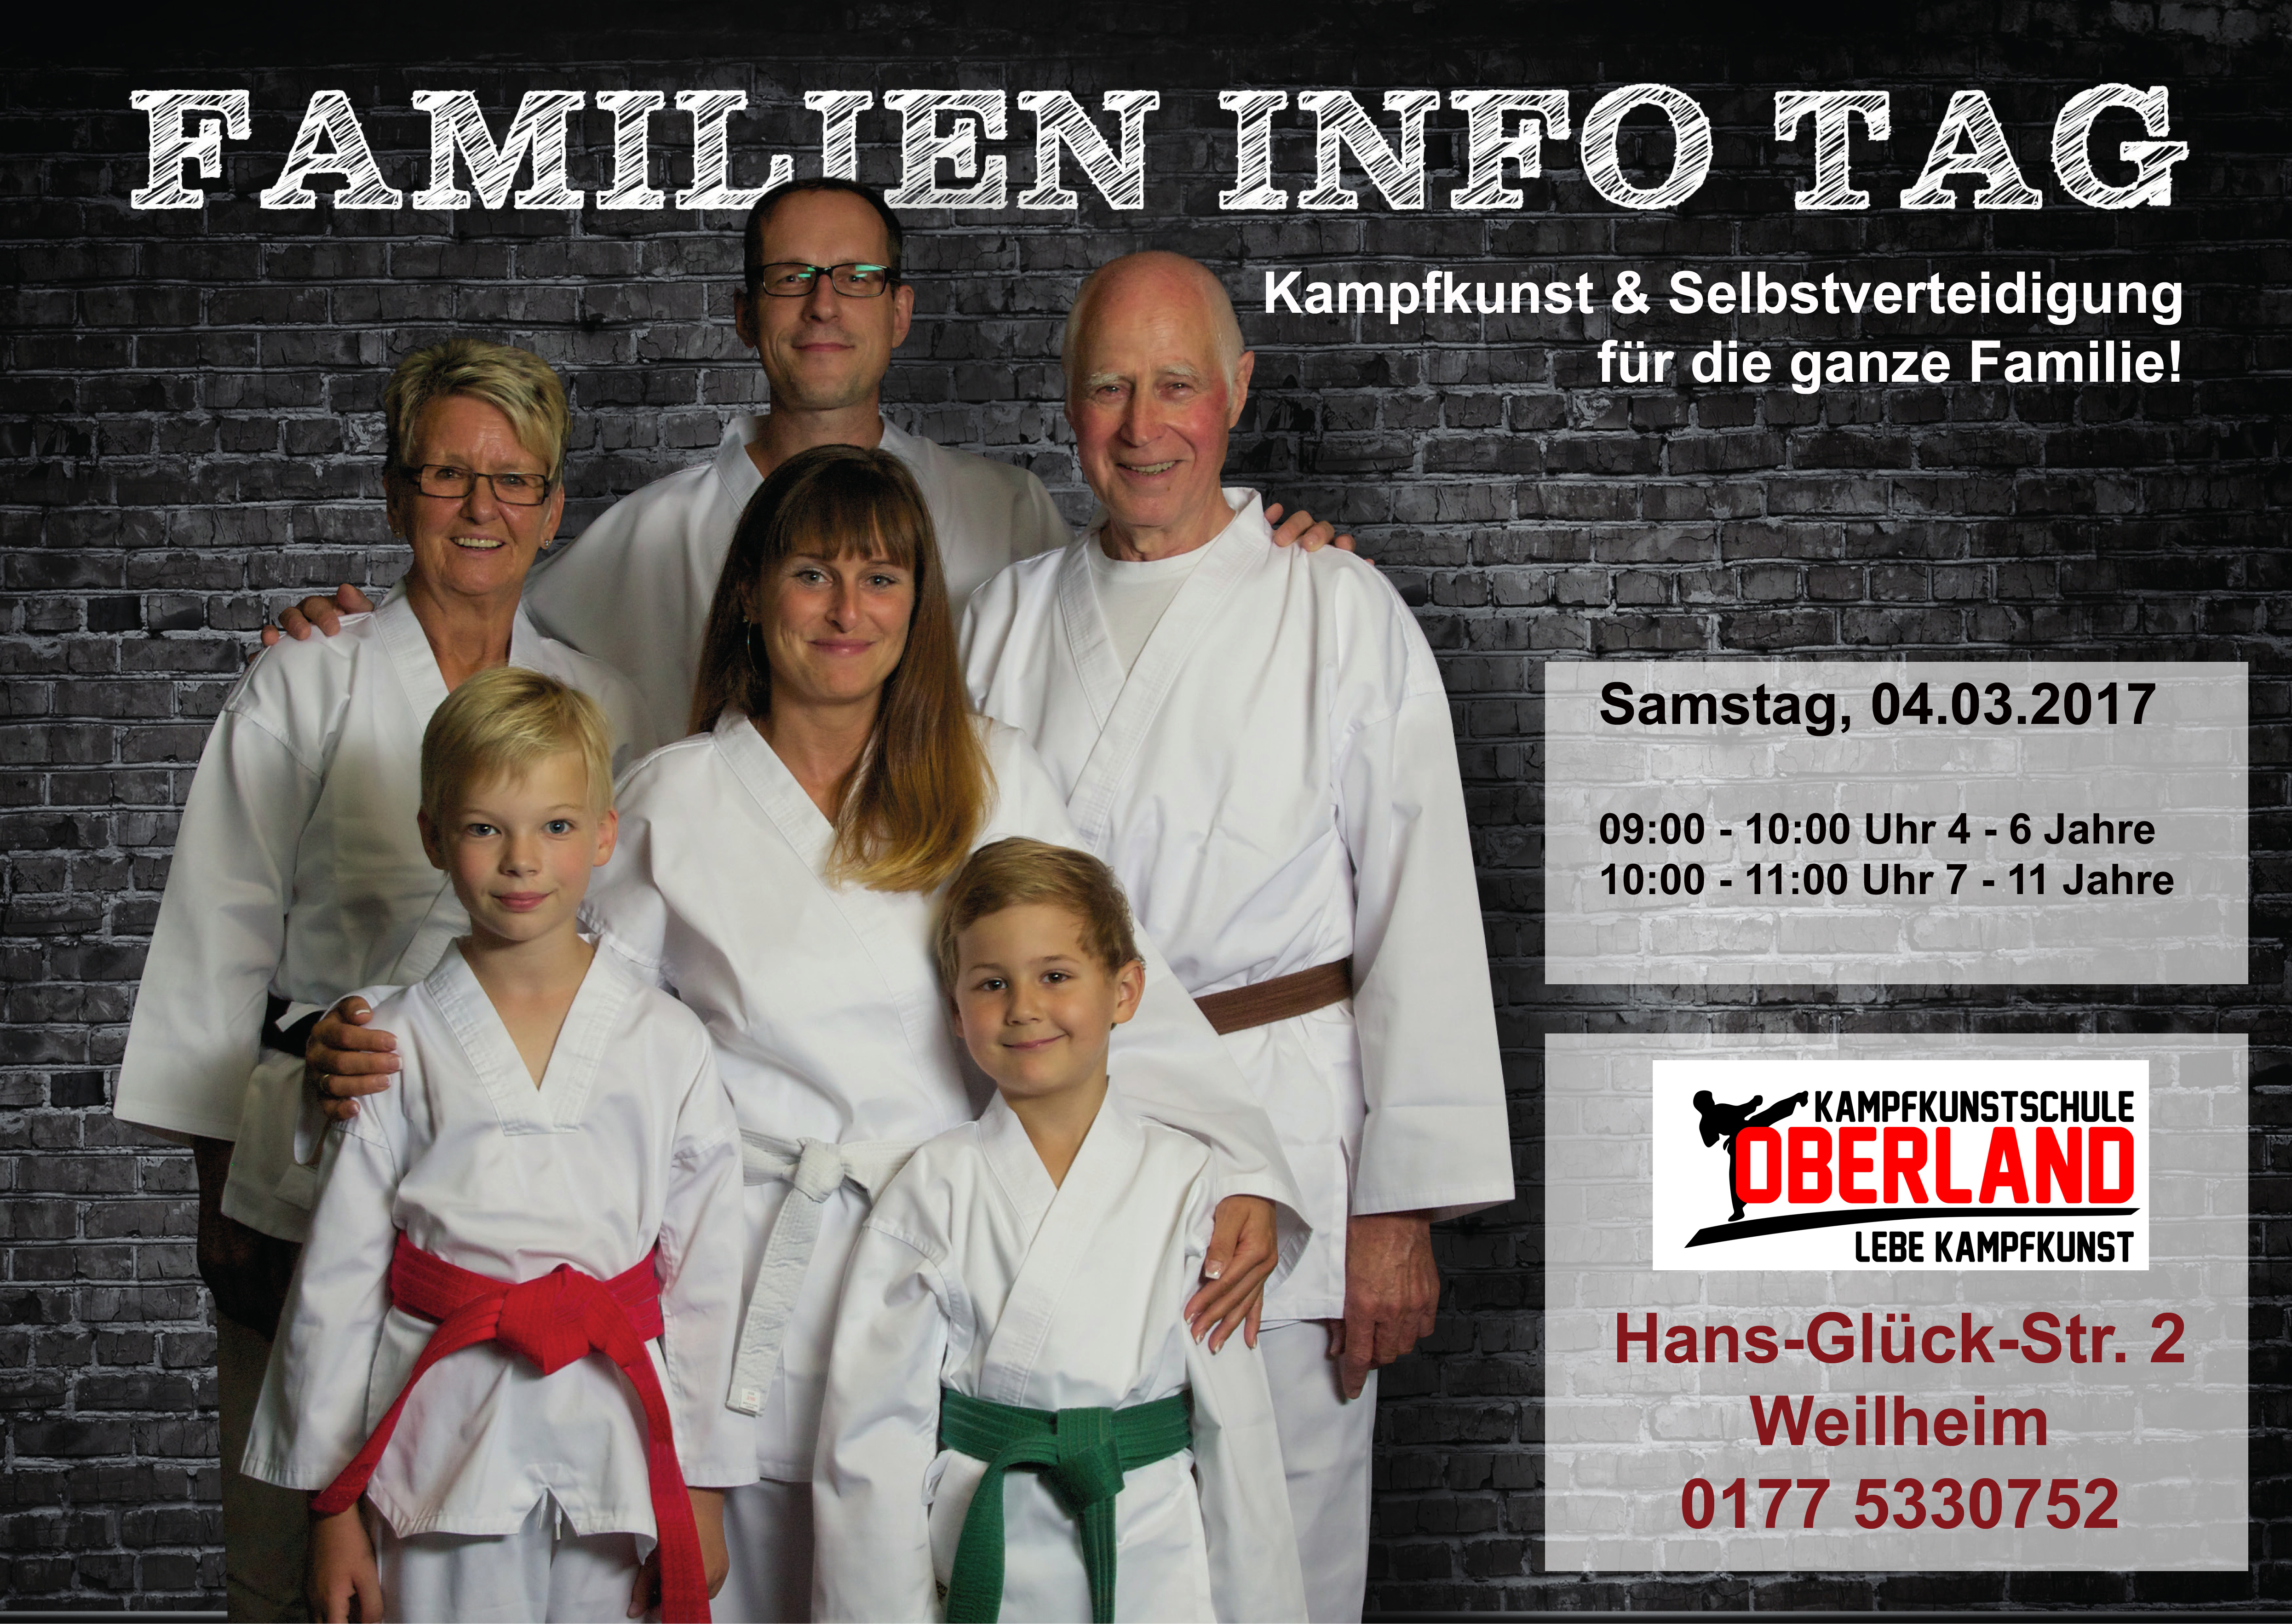 Familien Info Tag 20.02.2017